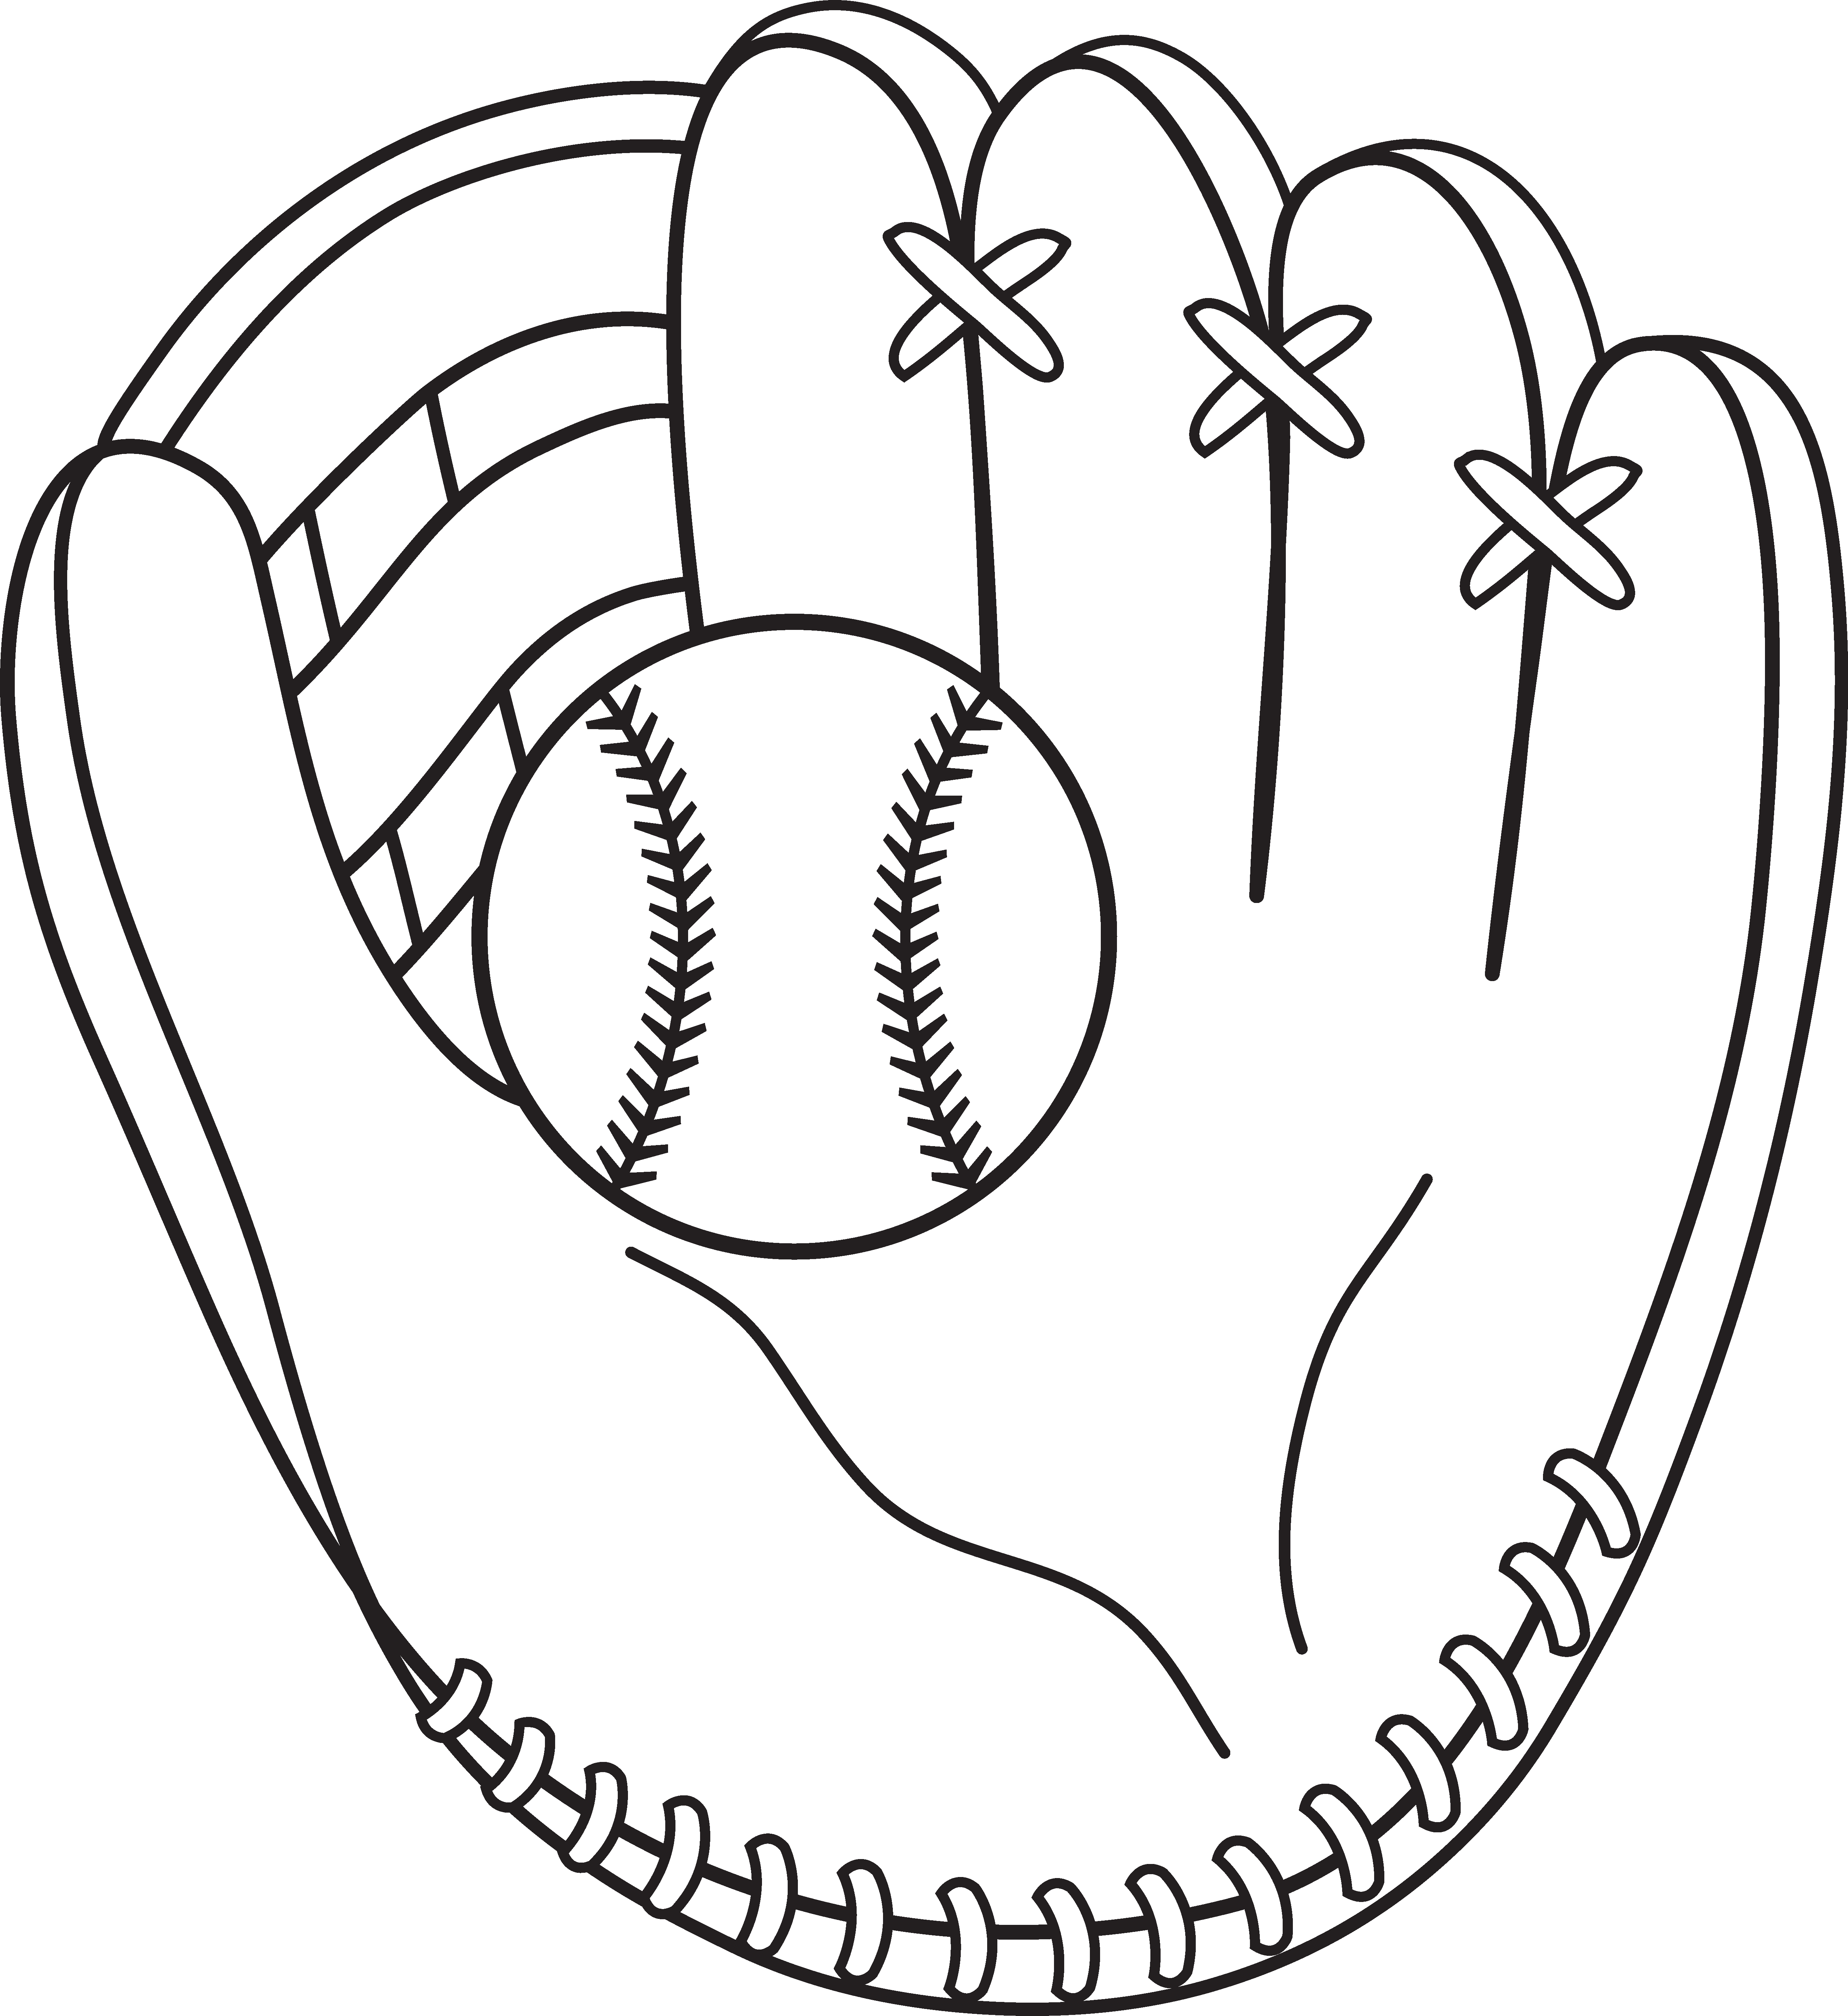 Baseball panda free images. Game clipart black and white